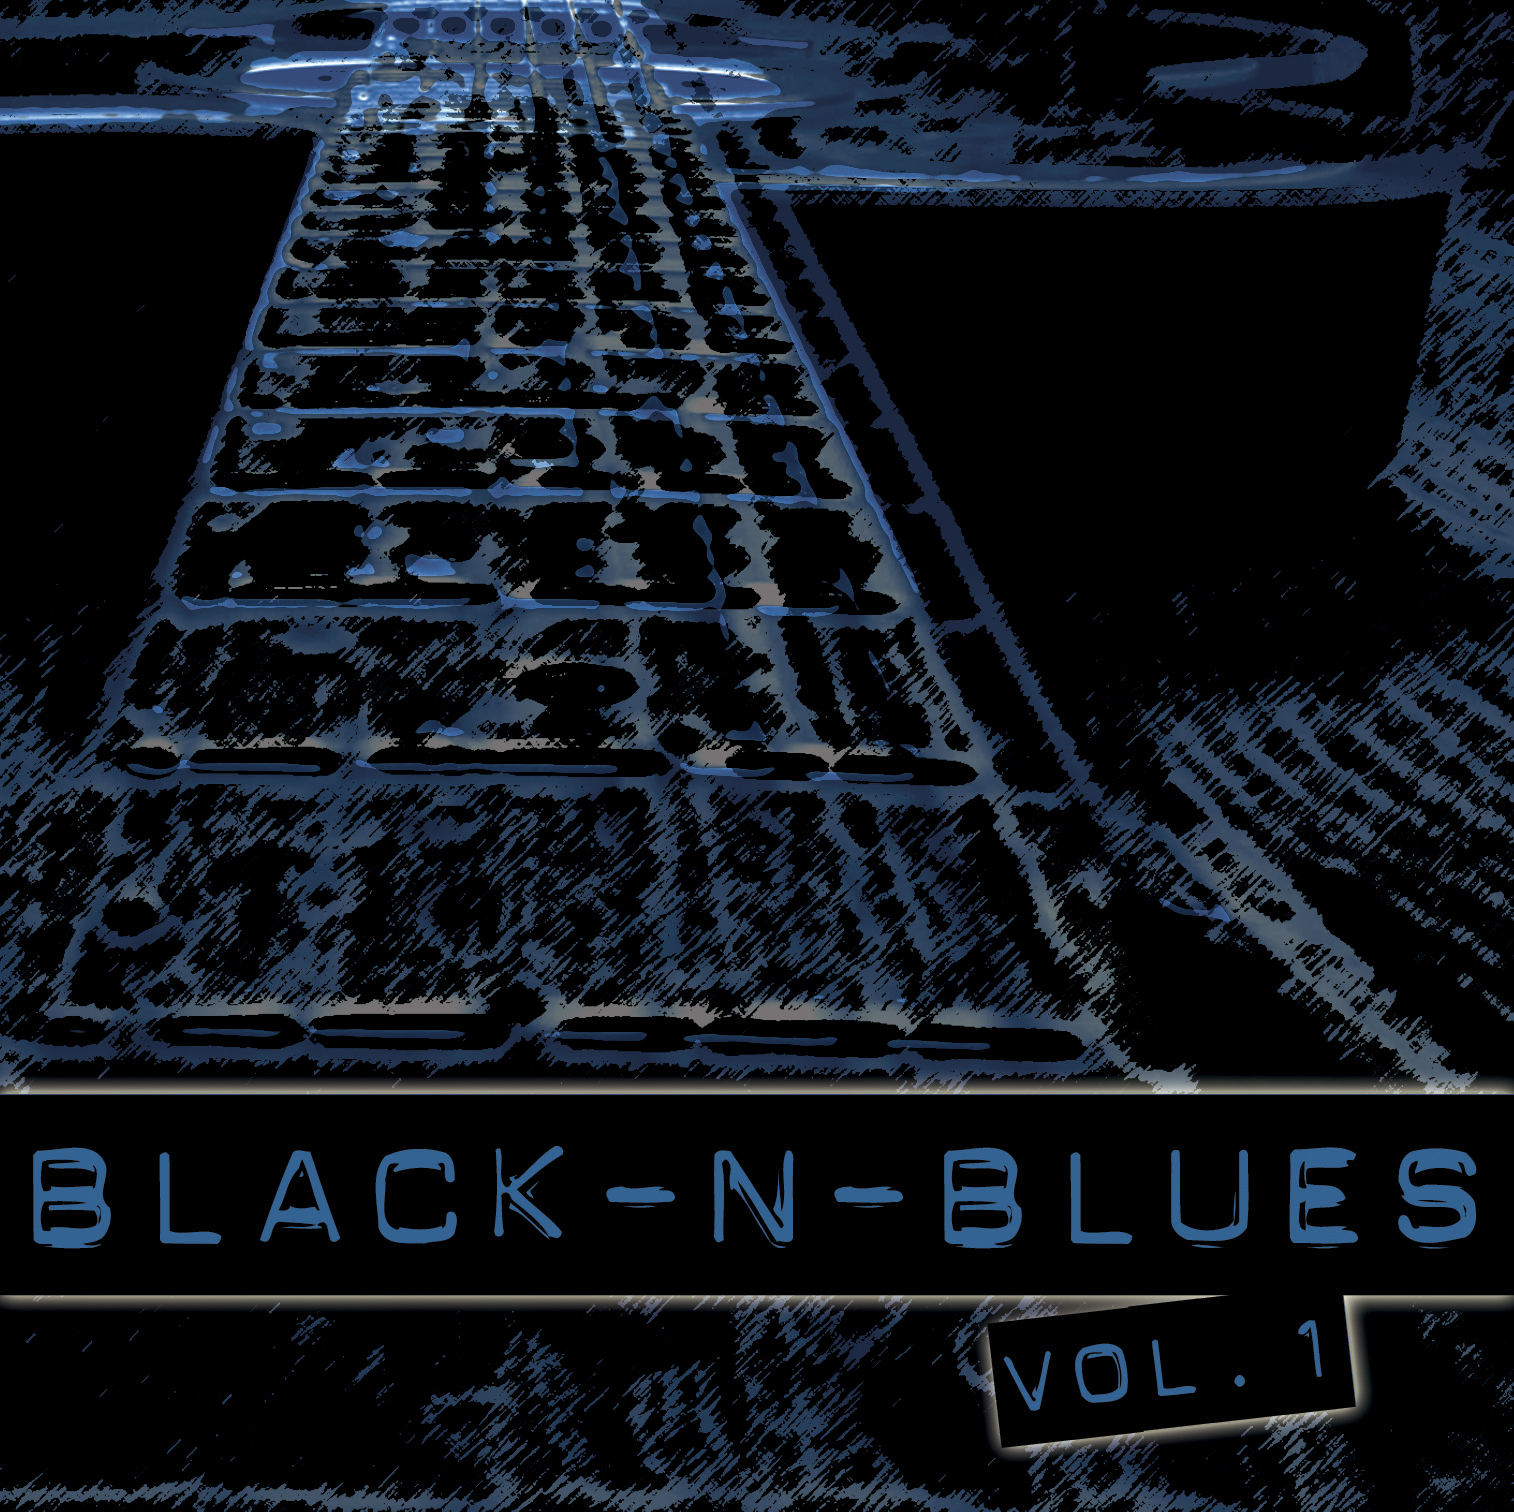 Black and Blues DA Karkos and Virus